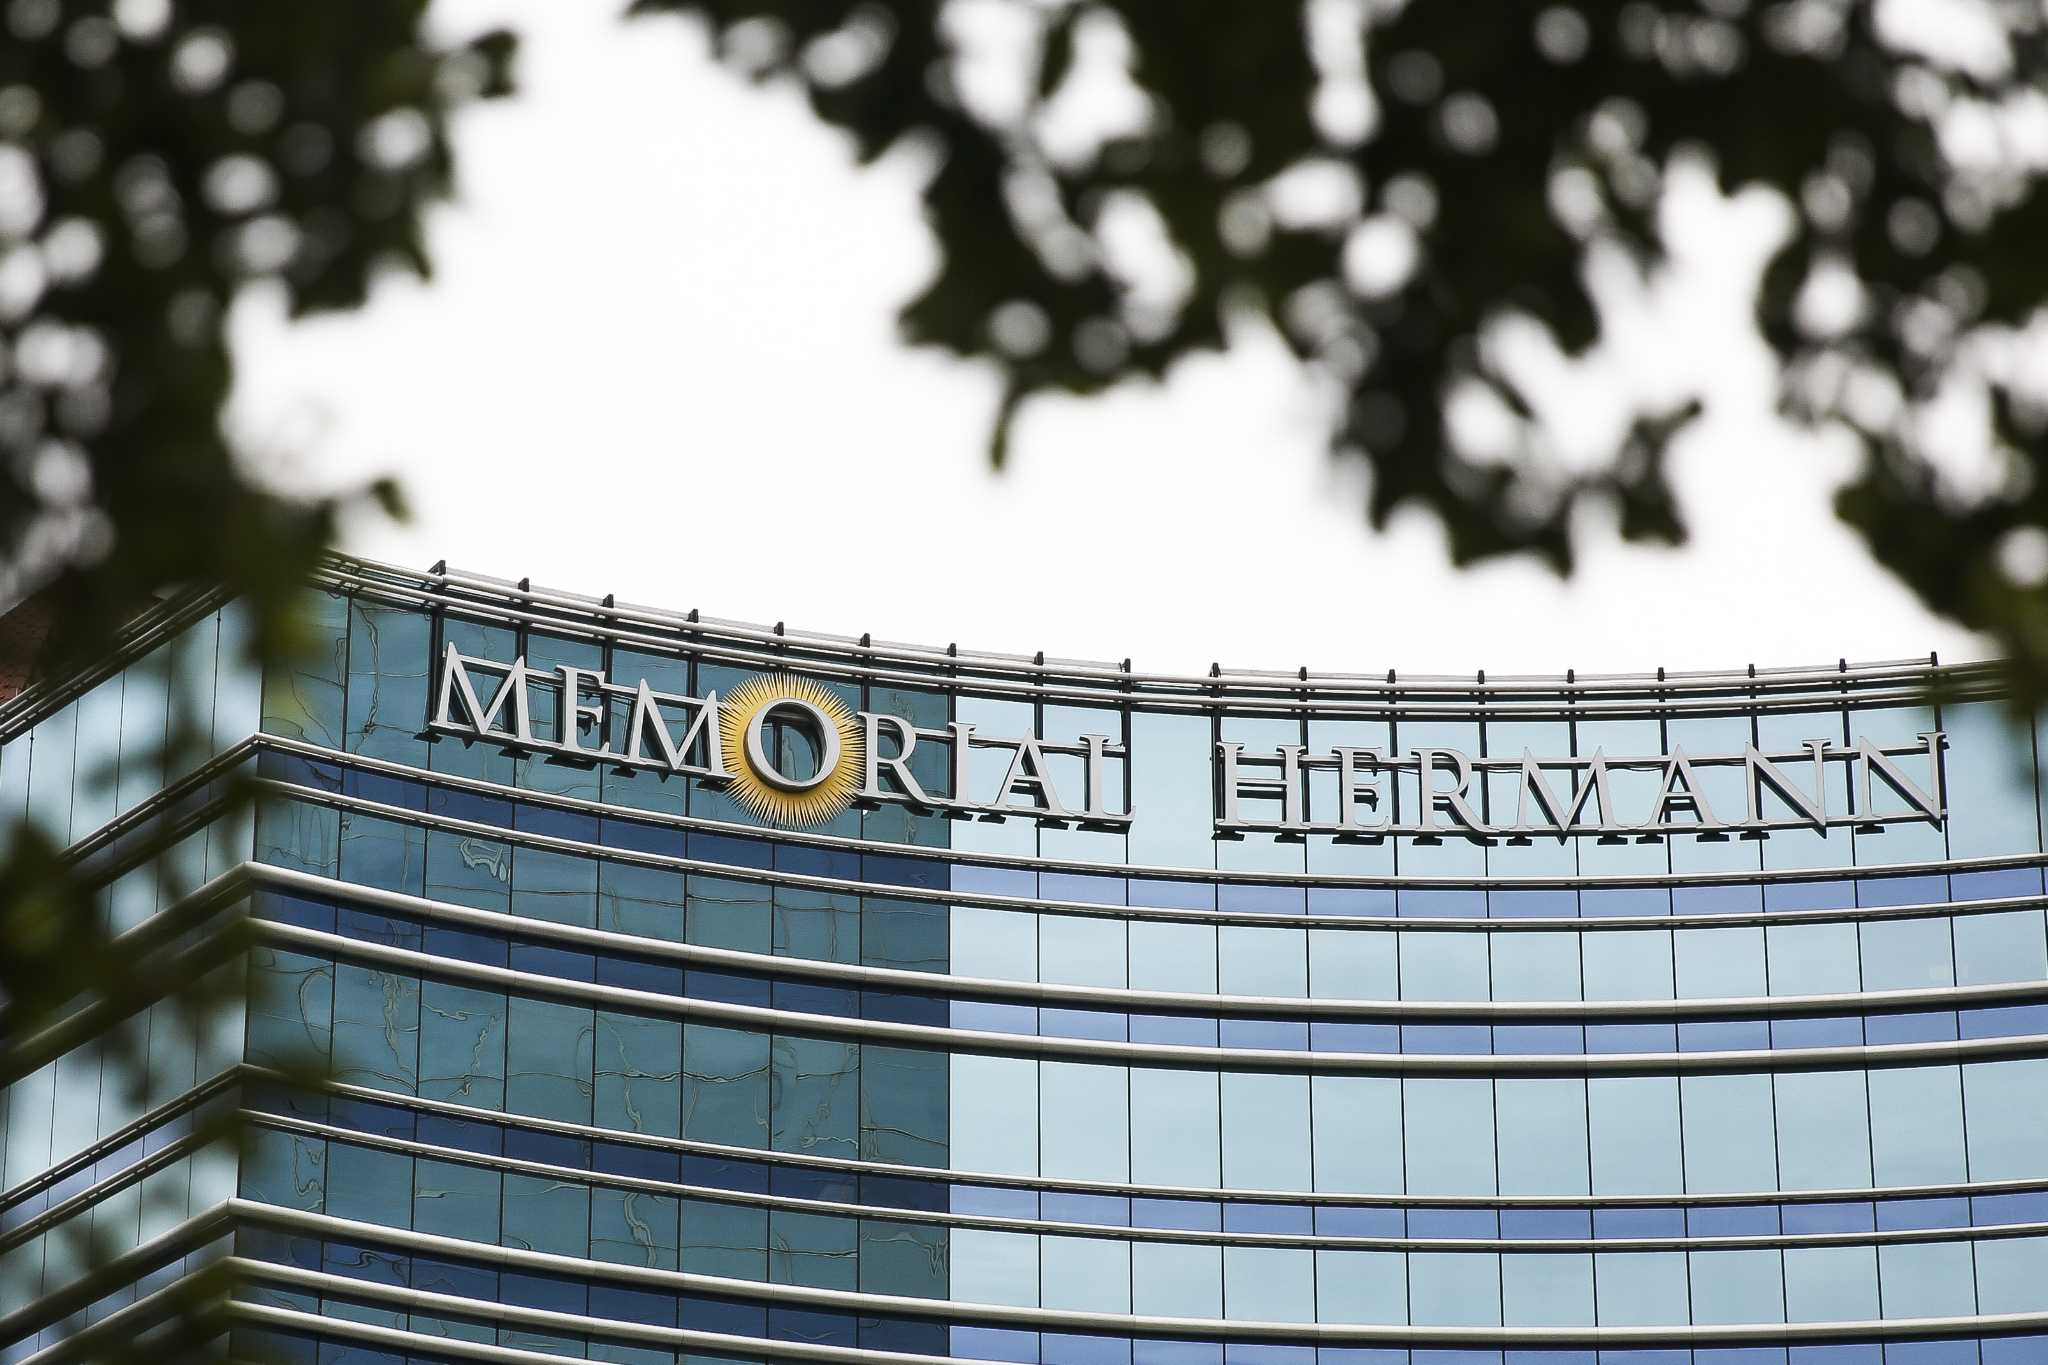 Memorial Hermann to merge with Baylor Scott & White creating